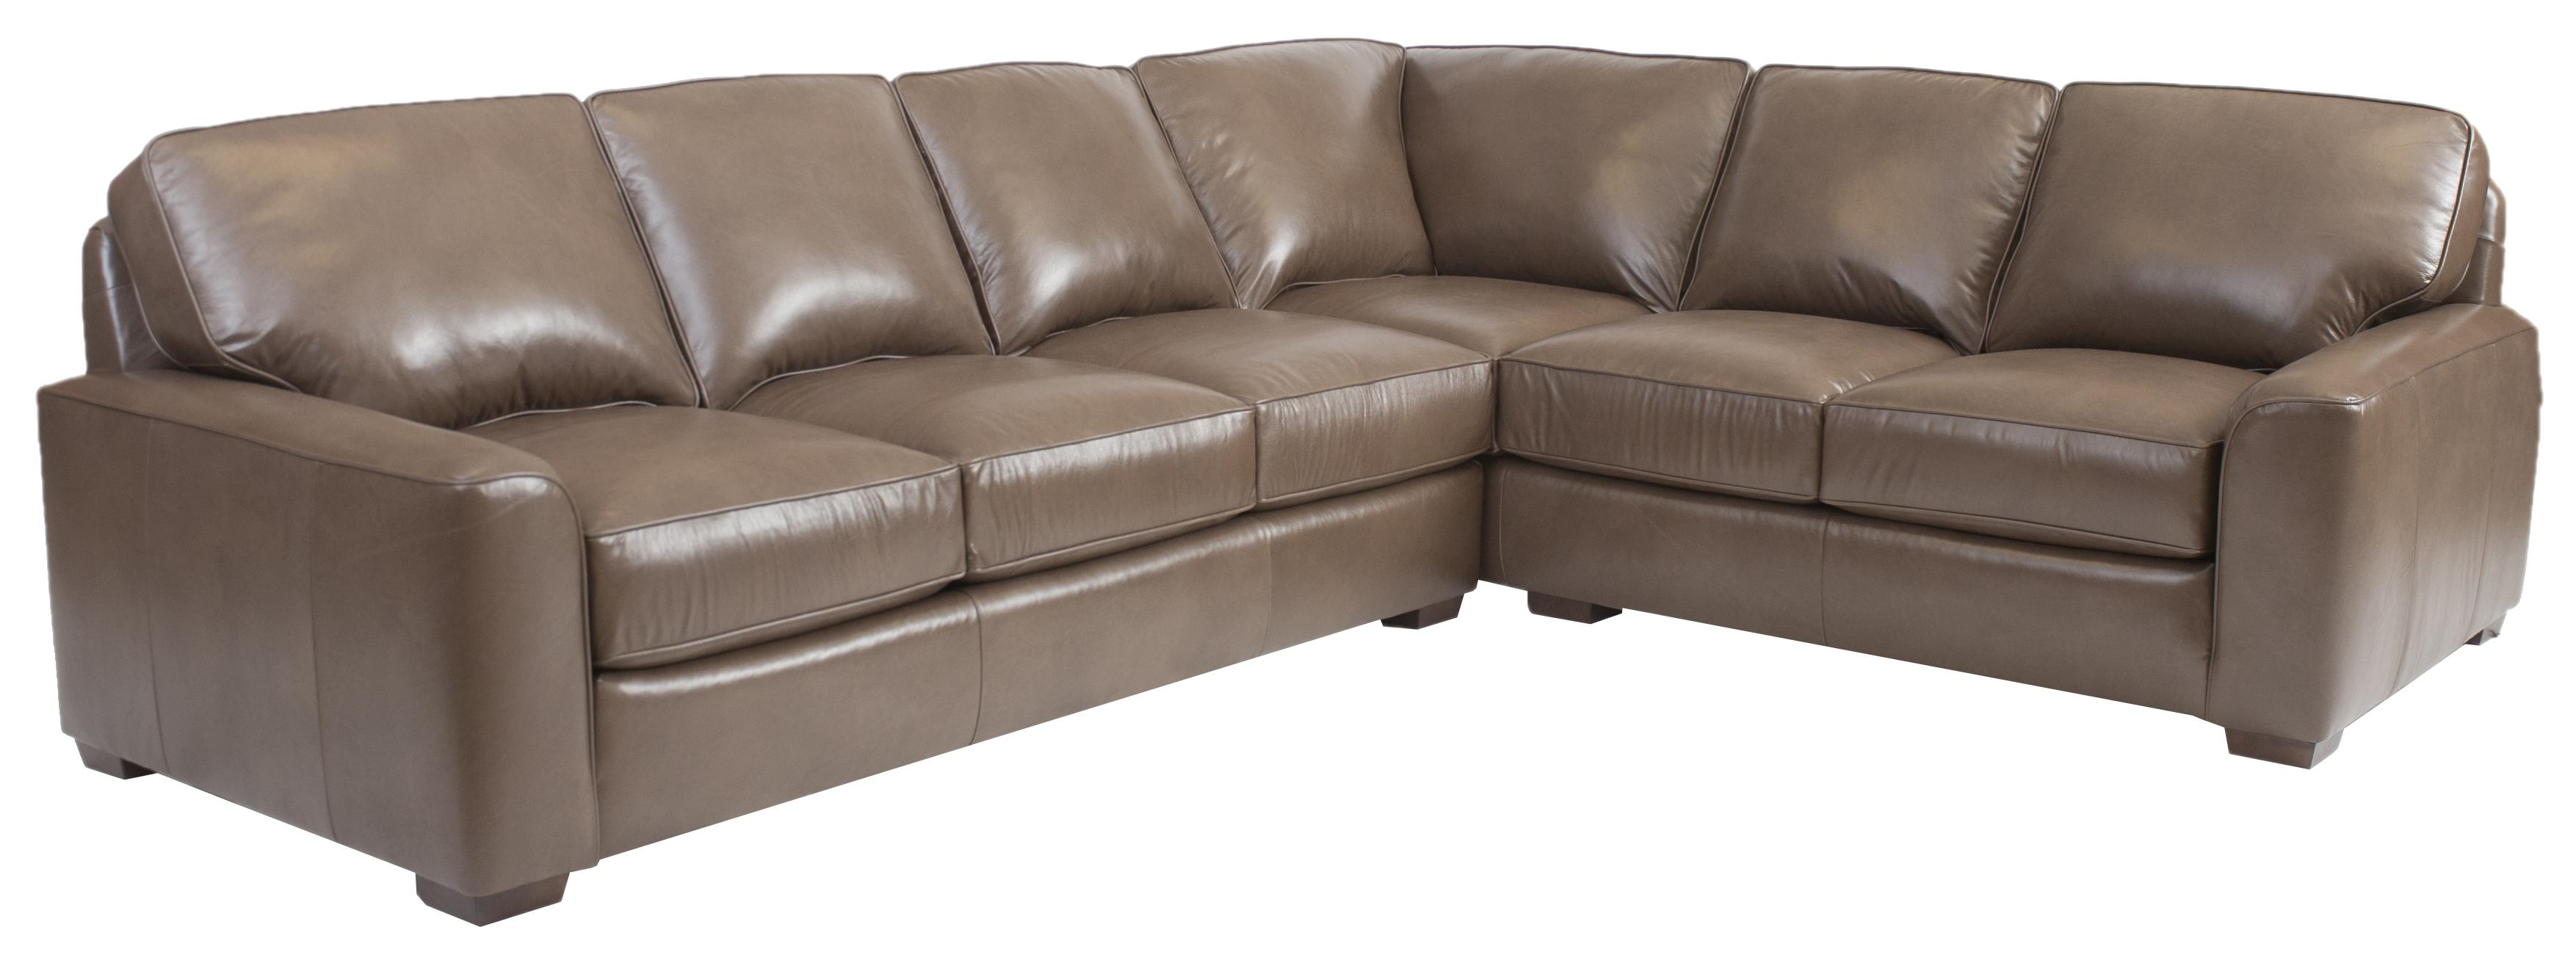 Build Your Own (8000 Series) Sectional Sofa by Smith Brothers at Mueller Furniture